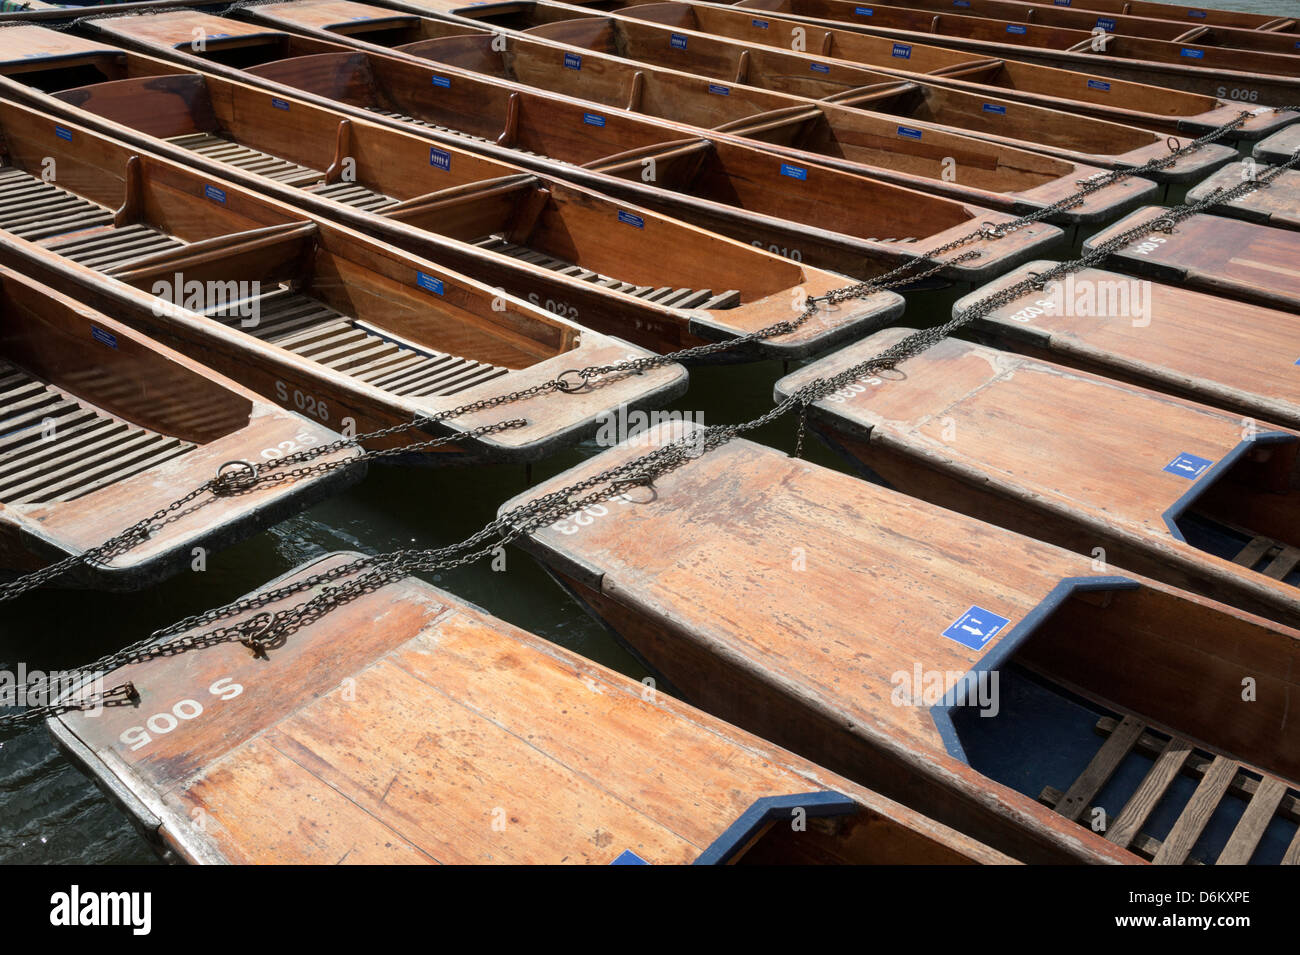 Abstract pattern of Cambridge punts lined up at a mooring on the River Cam - Stock Image